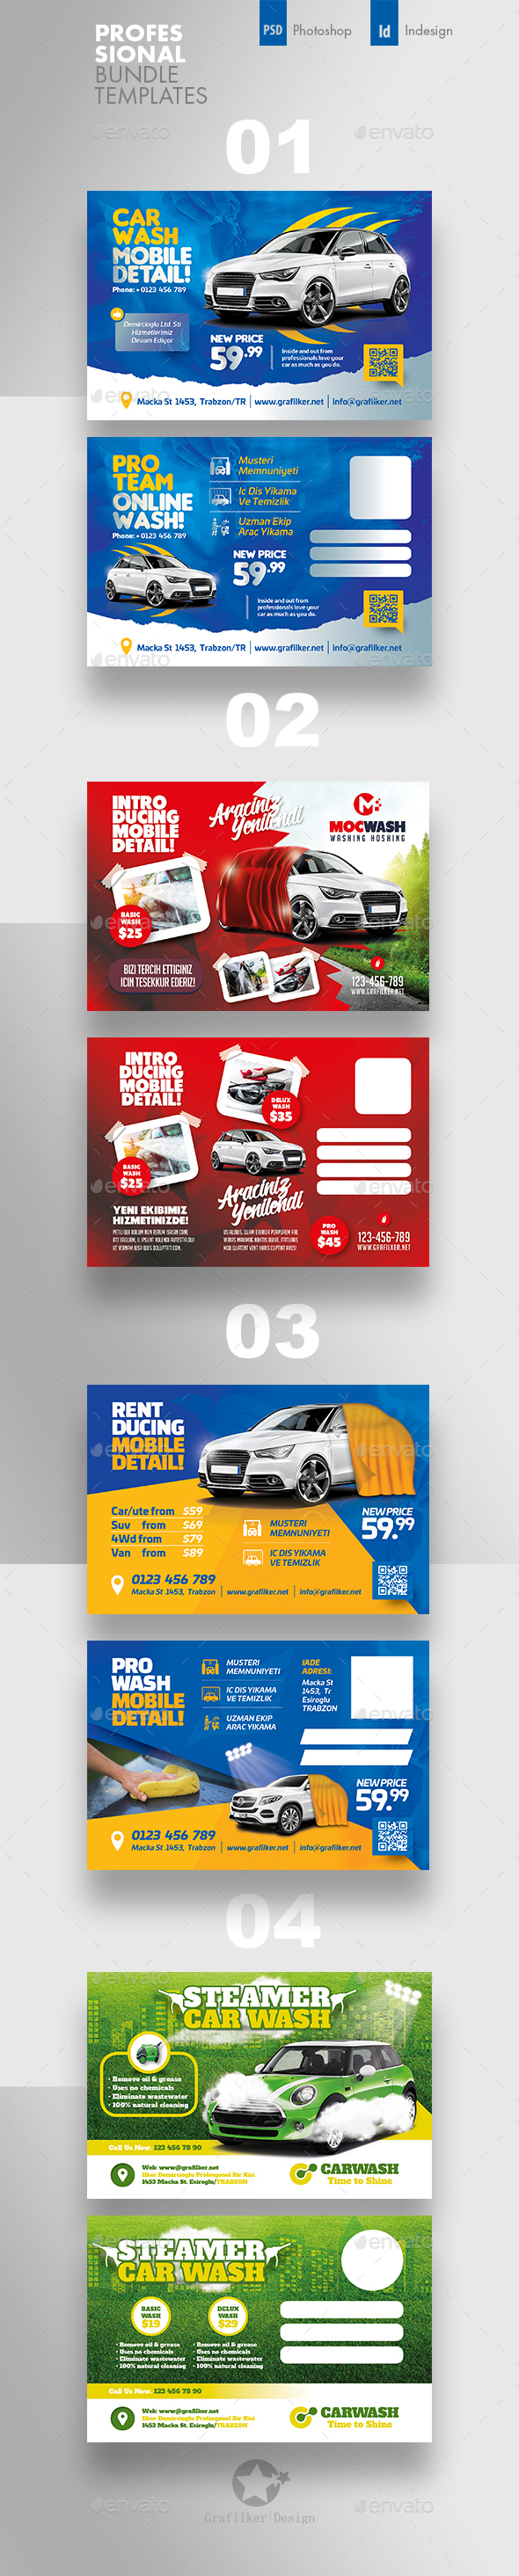 Car Wash Postcard Bundle Templates - Cards & Invites Print Templates